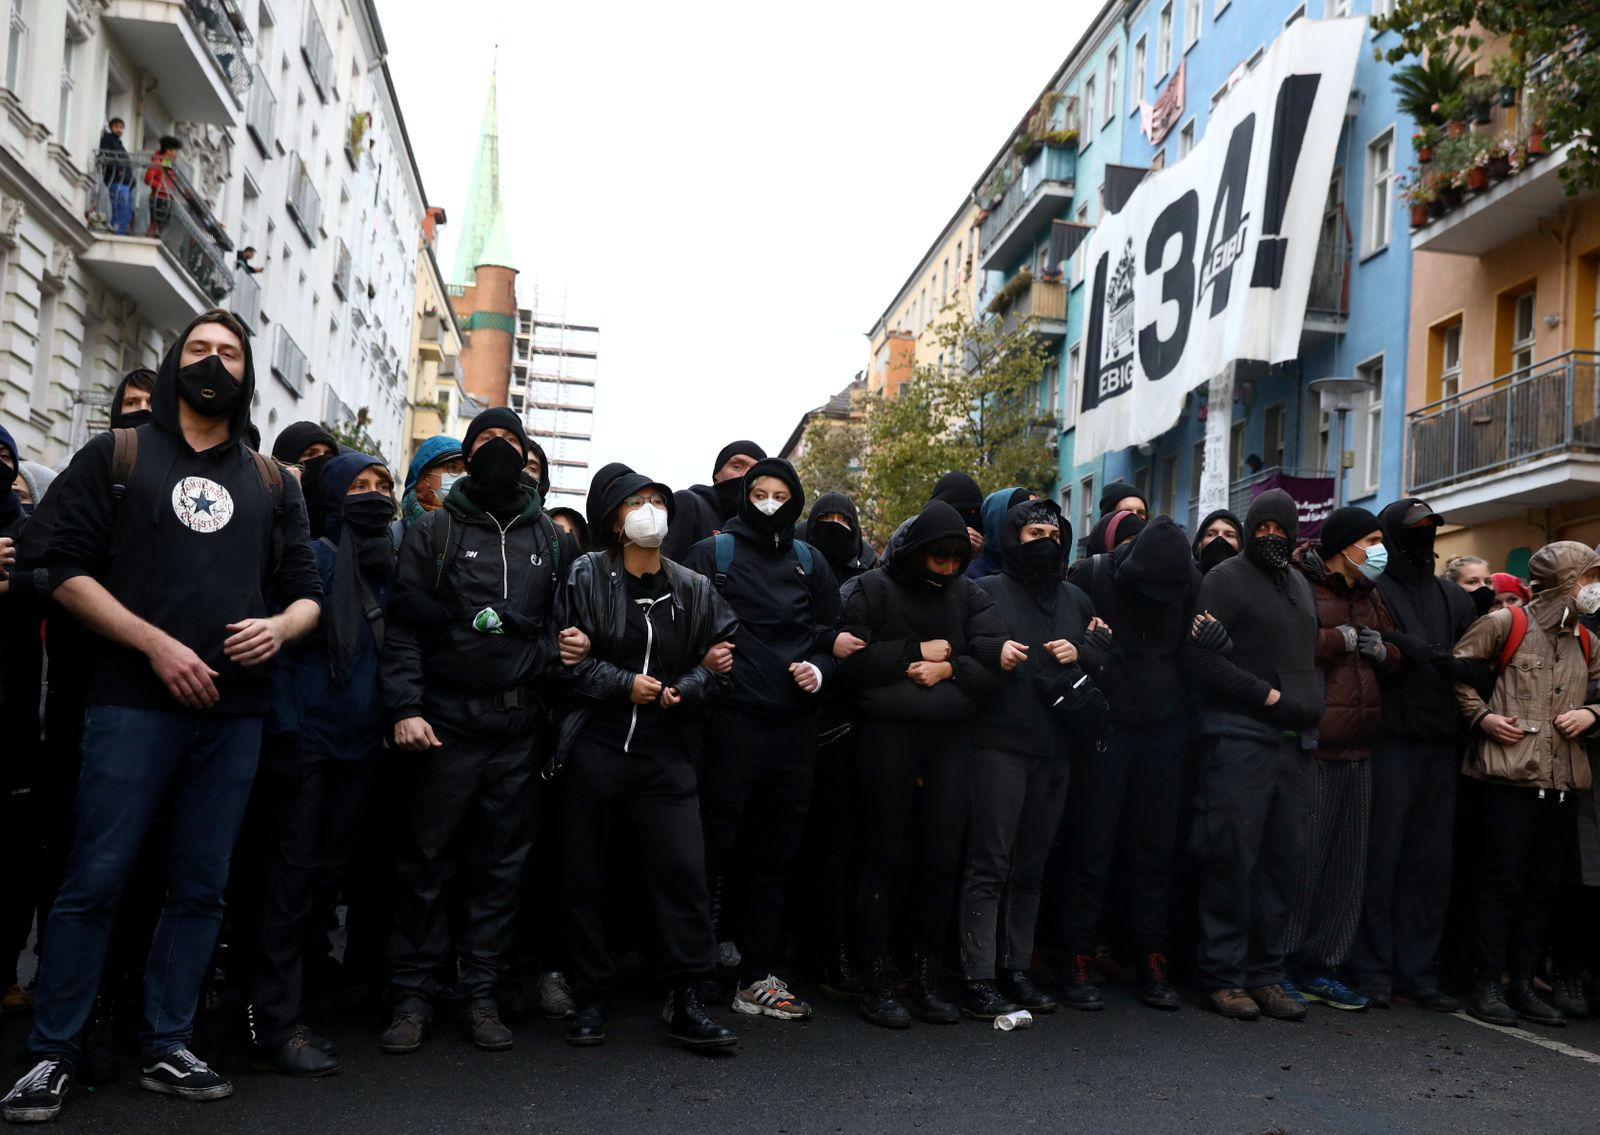 Demonstrators protest by the squatted left-wing housing project Liebigstrasse 34, which faces eviction by the police in Berlin